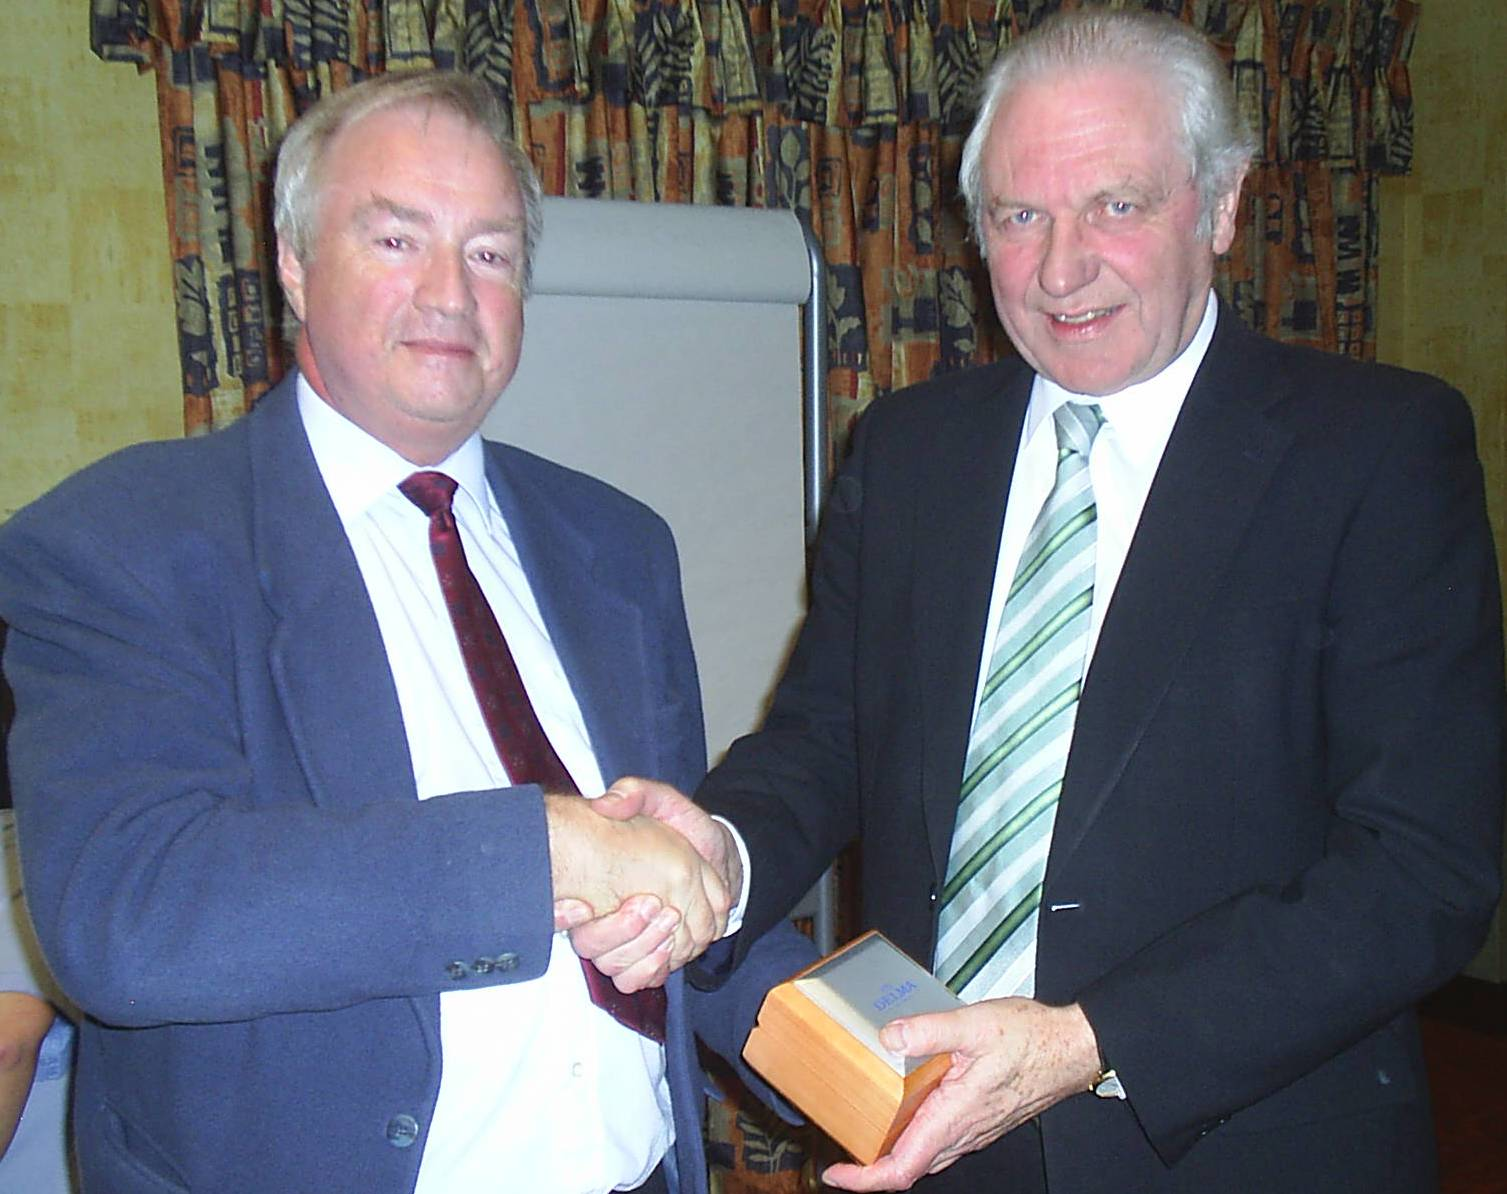 Jim Shaw receiving a watch from Robert Haworth